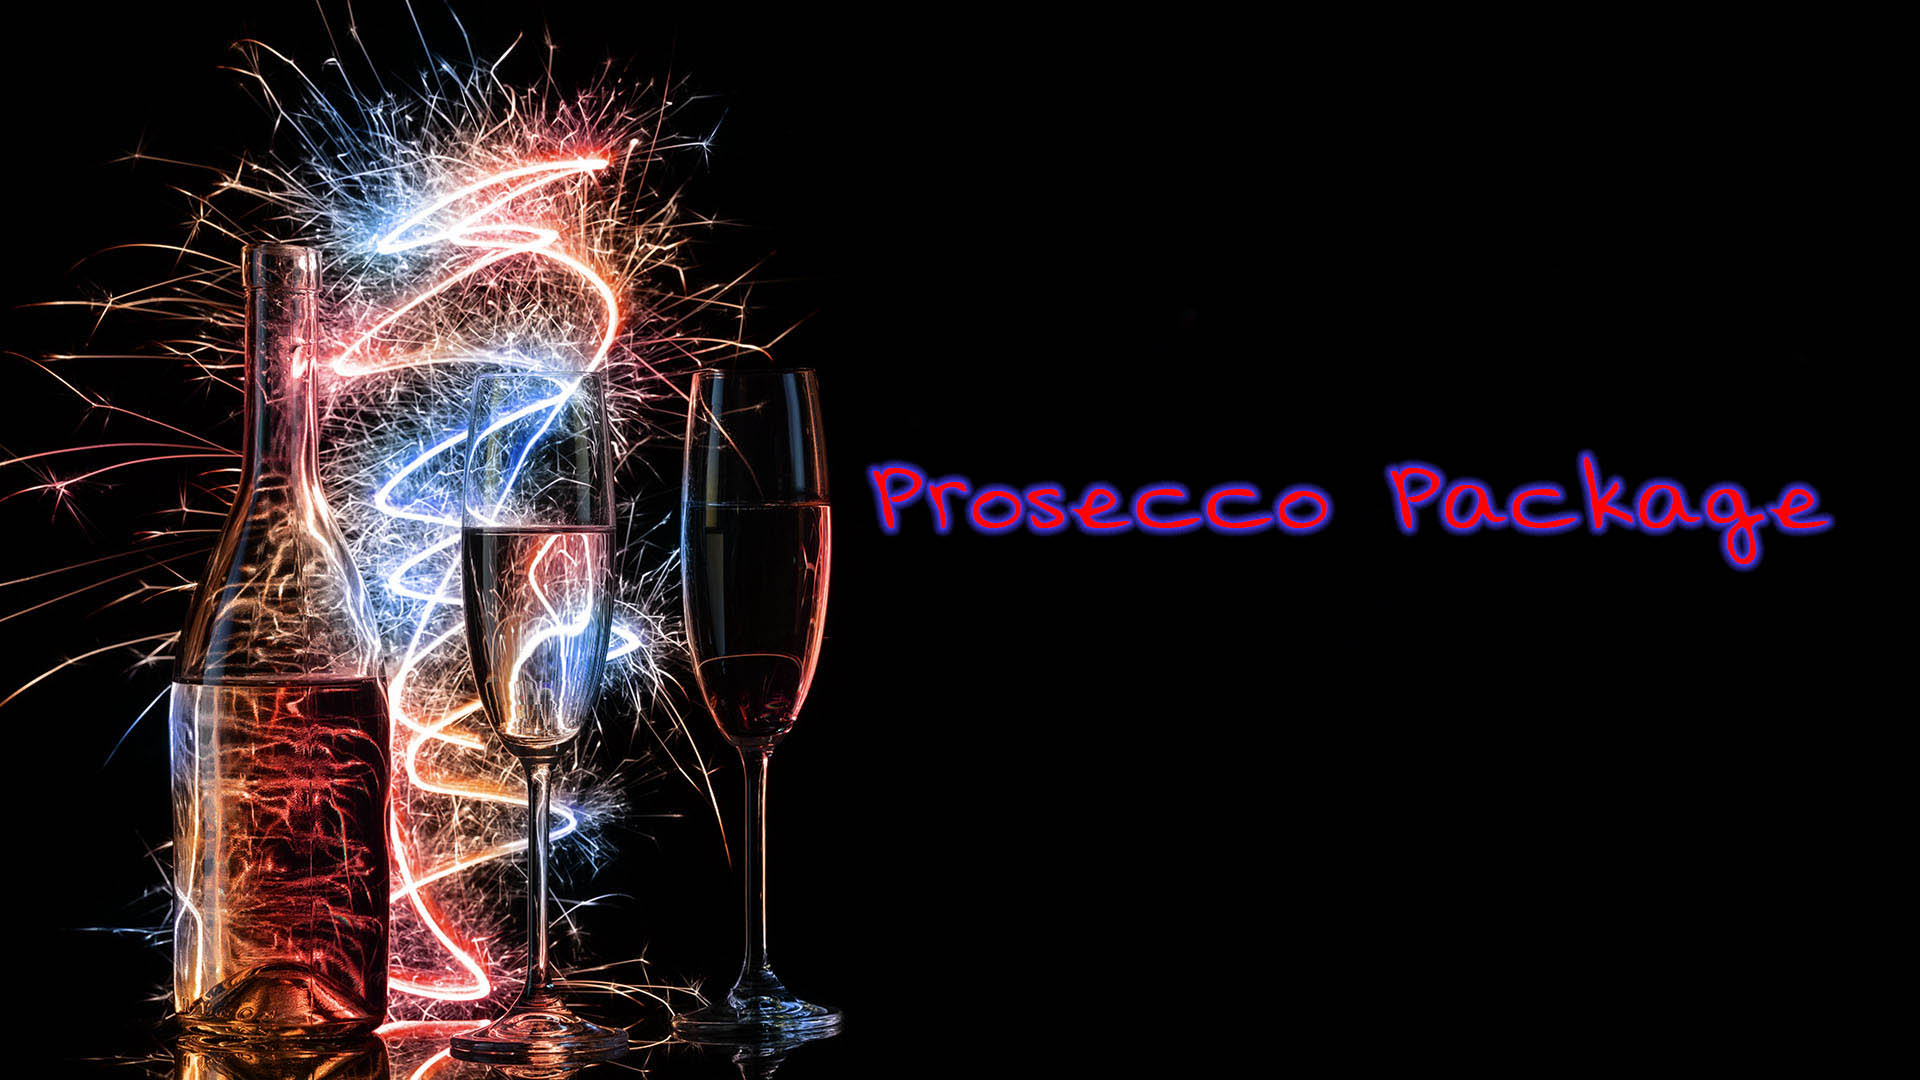 Prosecco Package at Cresta Court Hotel